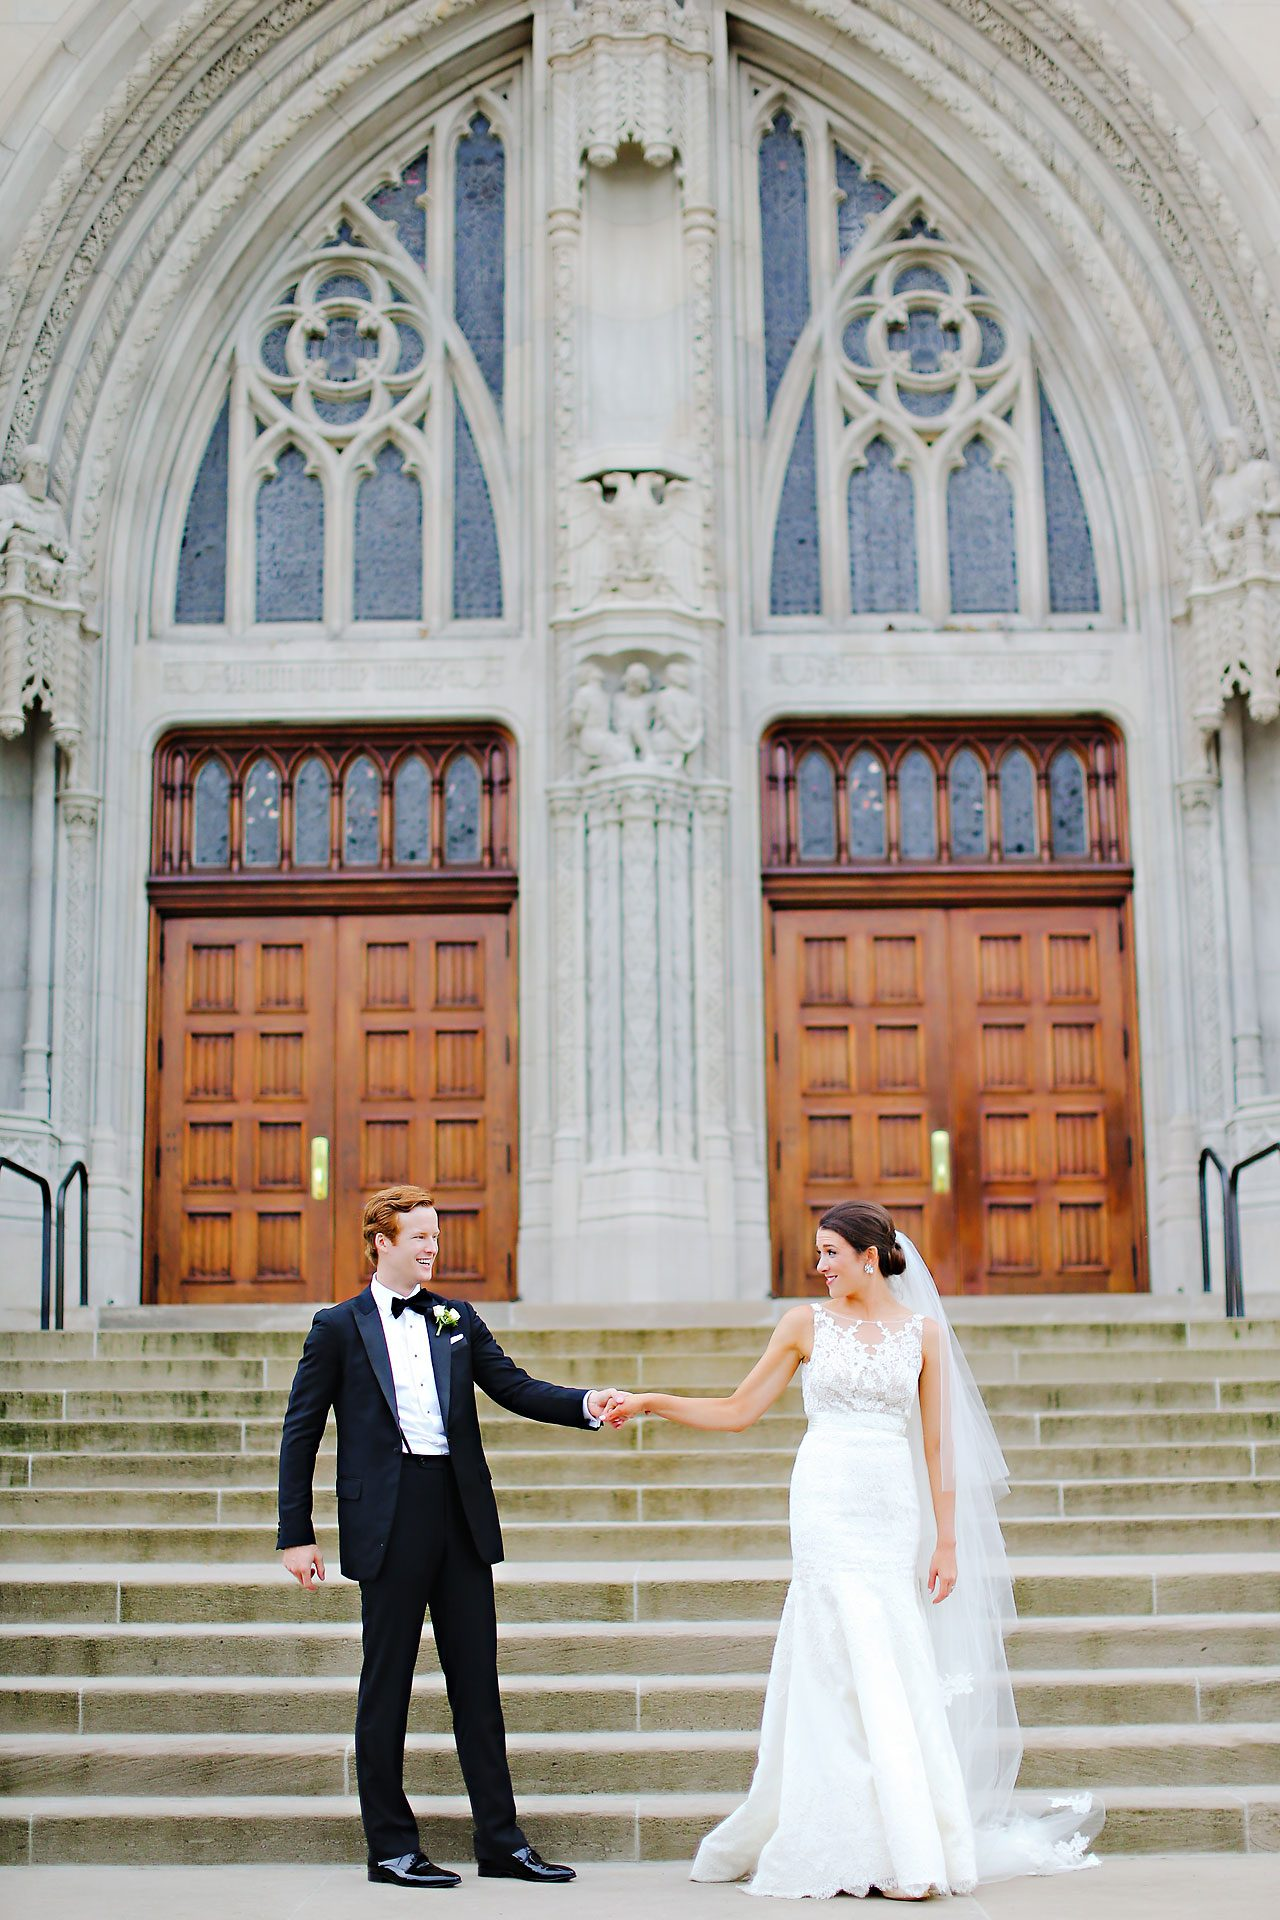 217 katherine austin scottish rite indianapolis wedding